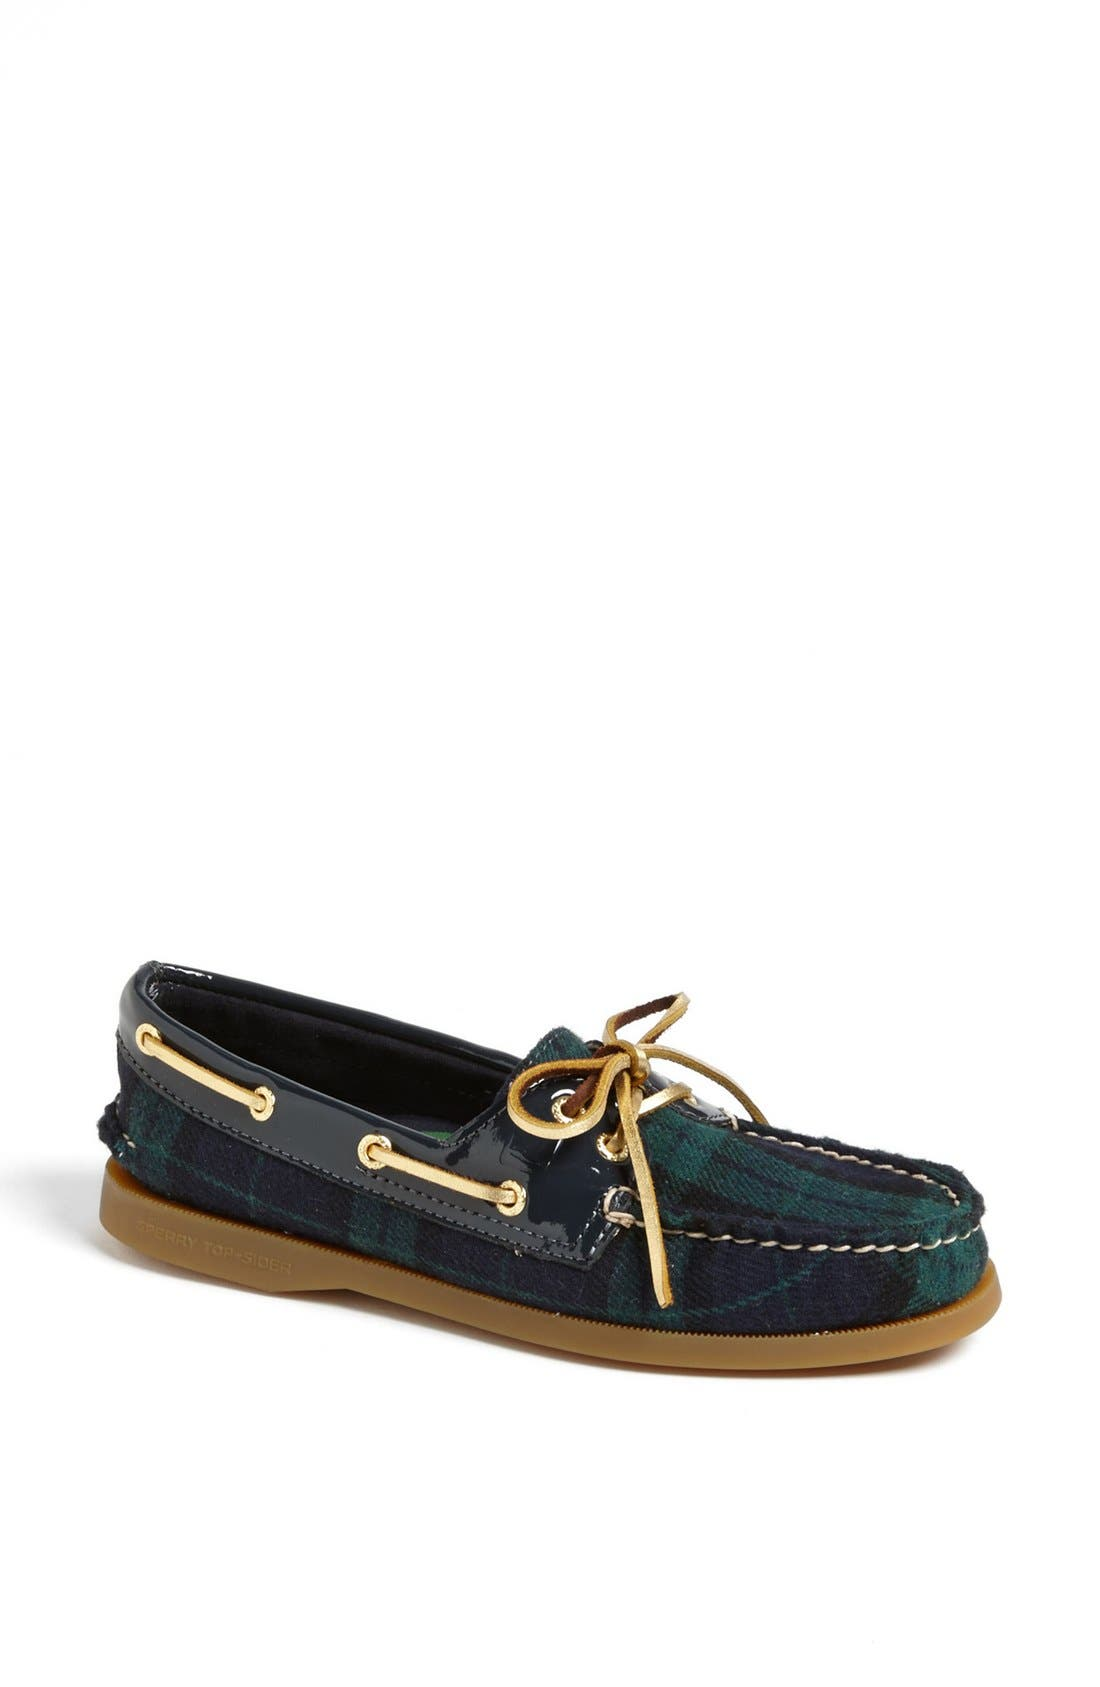 Alternate Image 1 Selected - Sperry 'Authentic Original' Boat Shoe